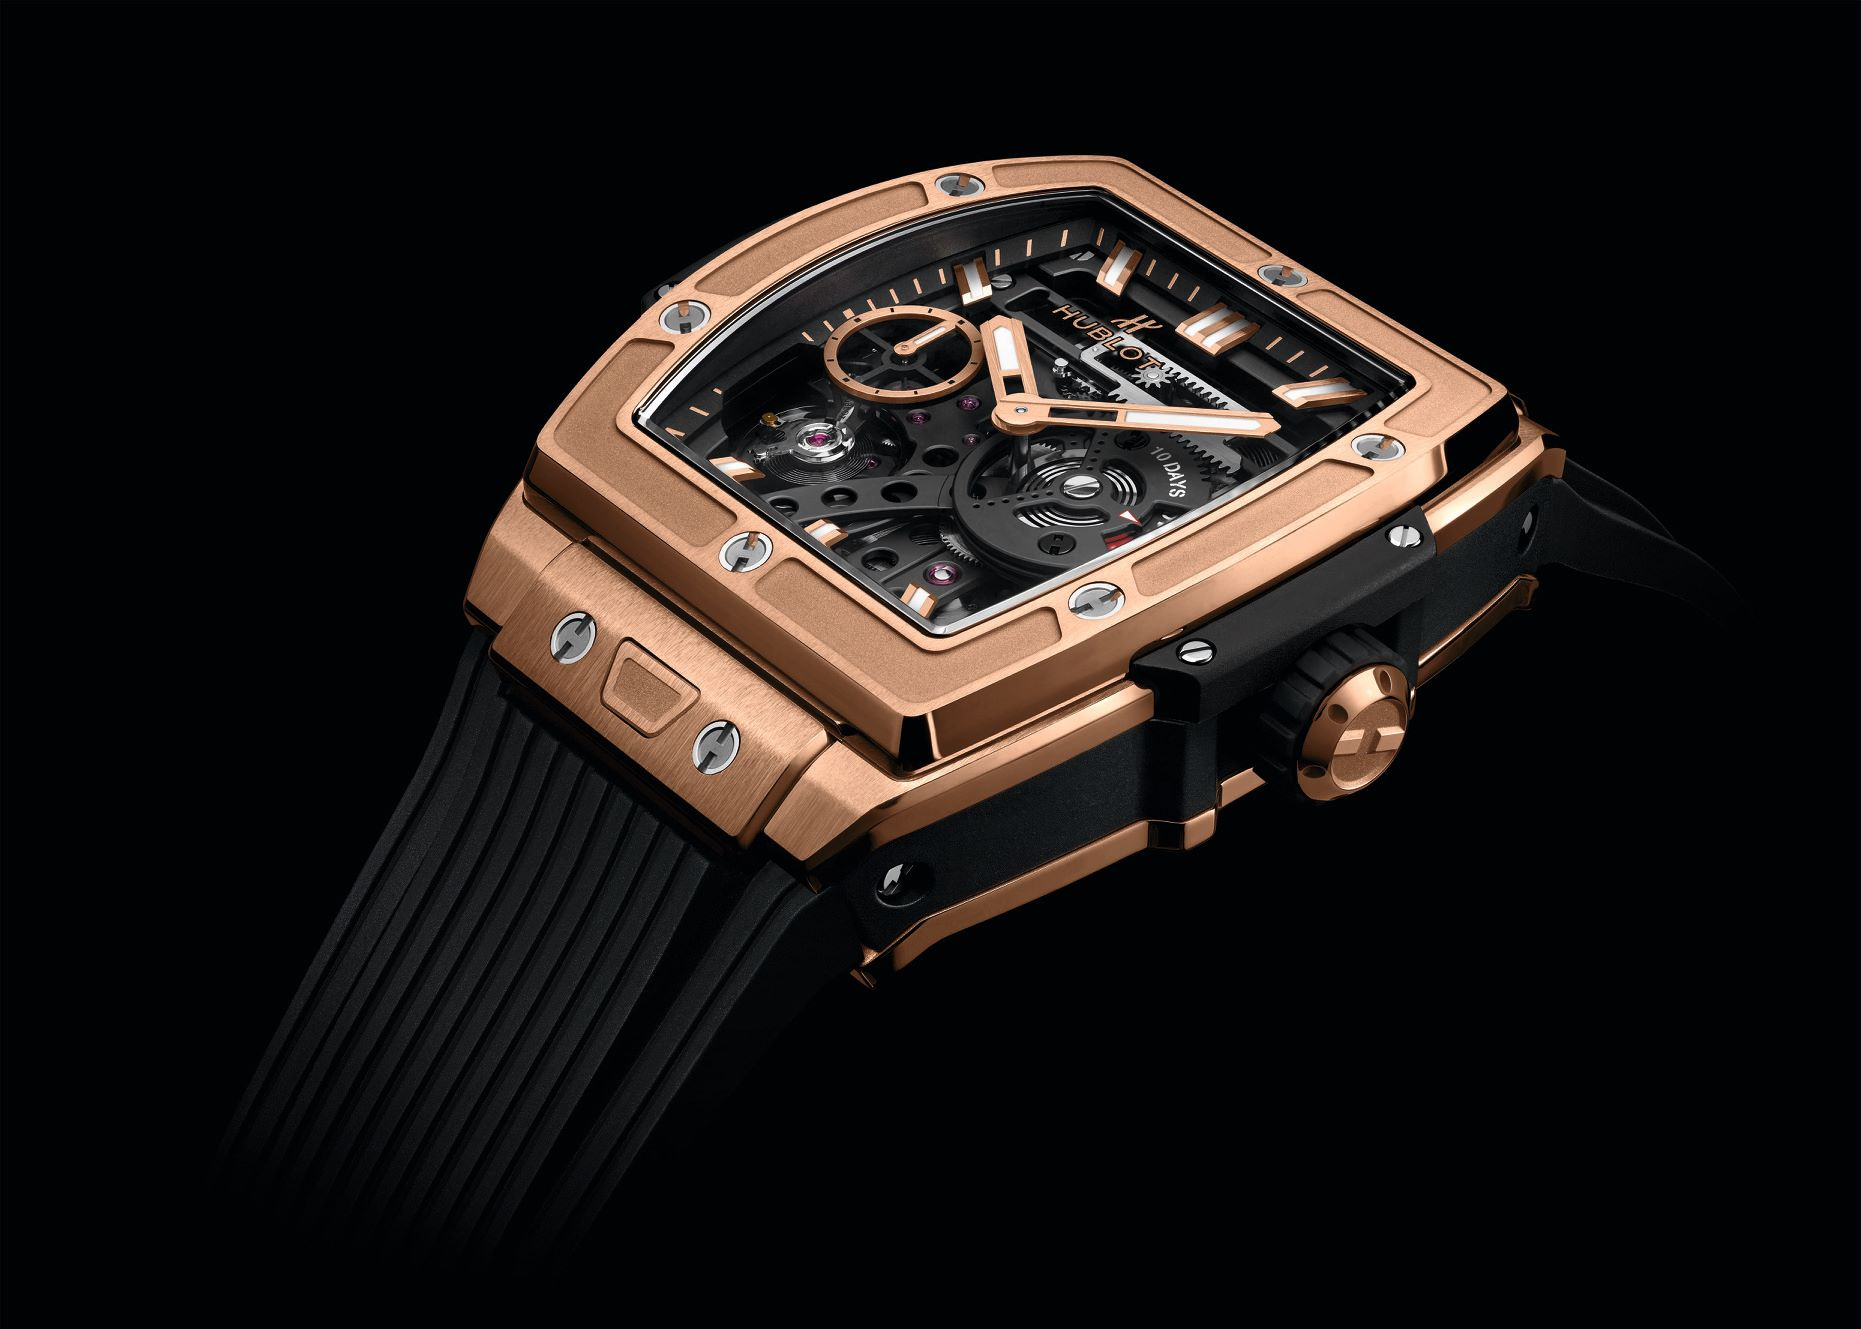 Hublot Dubai Watch Week 2020 - Spirit of Big Bang Meca 10 King Gold